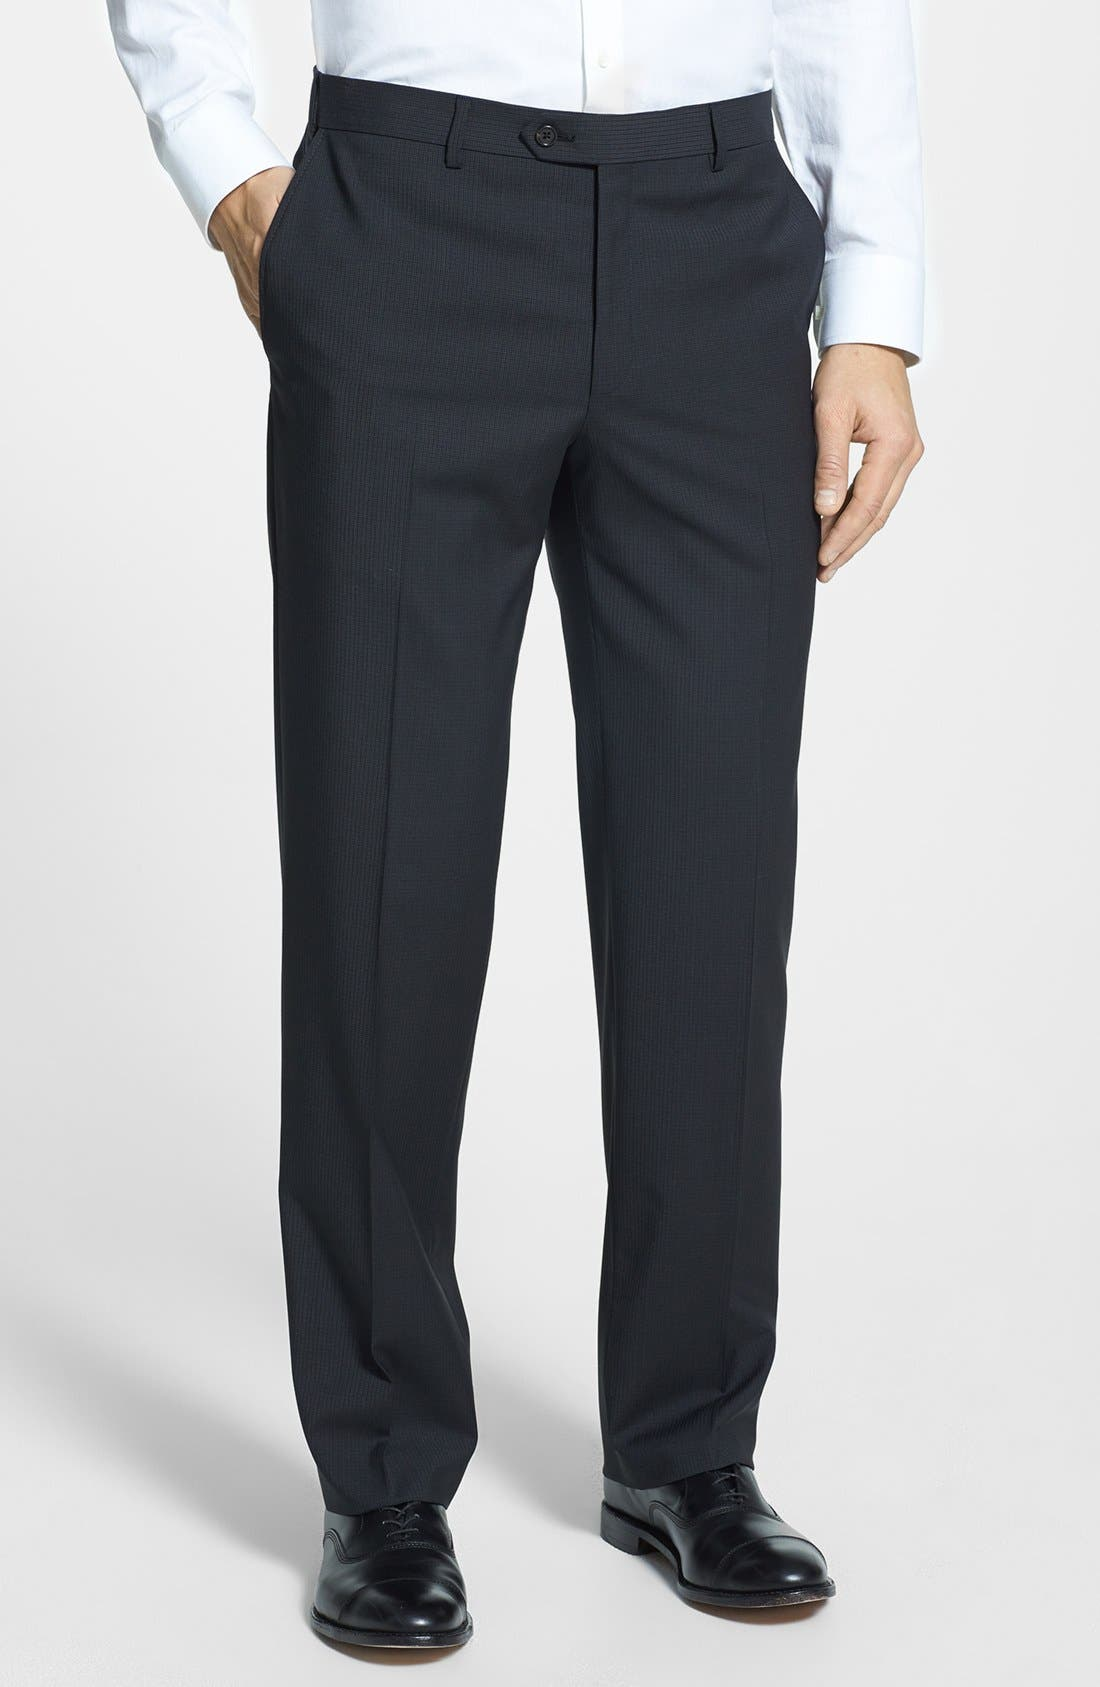 Alternate Image 1 Selected - Pal Zileri 'Zignone' Flat Front Trousers